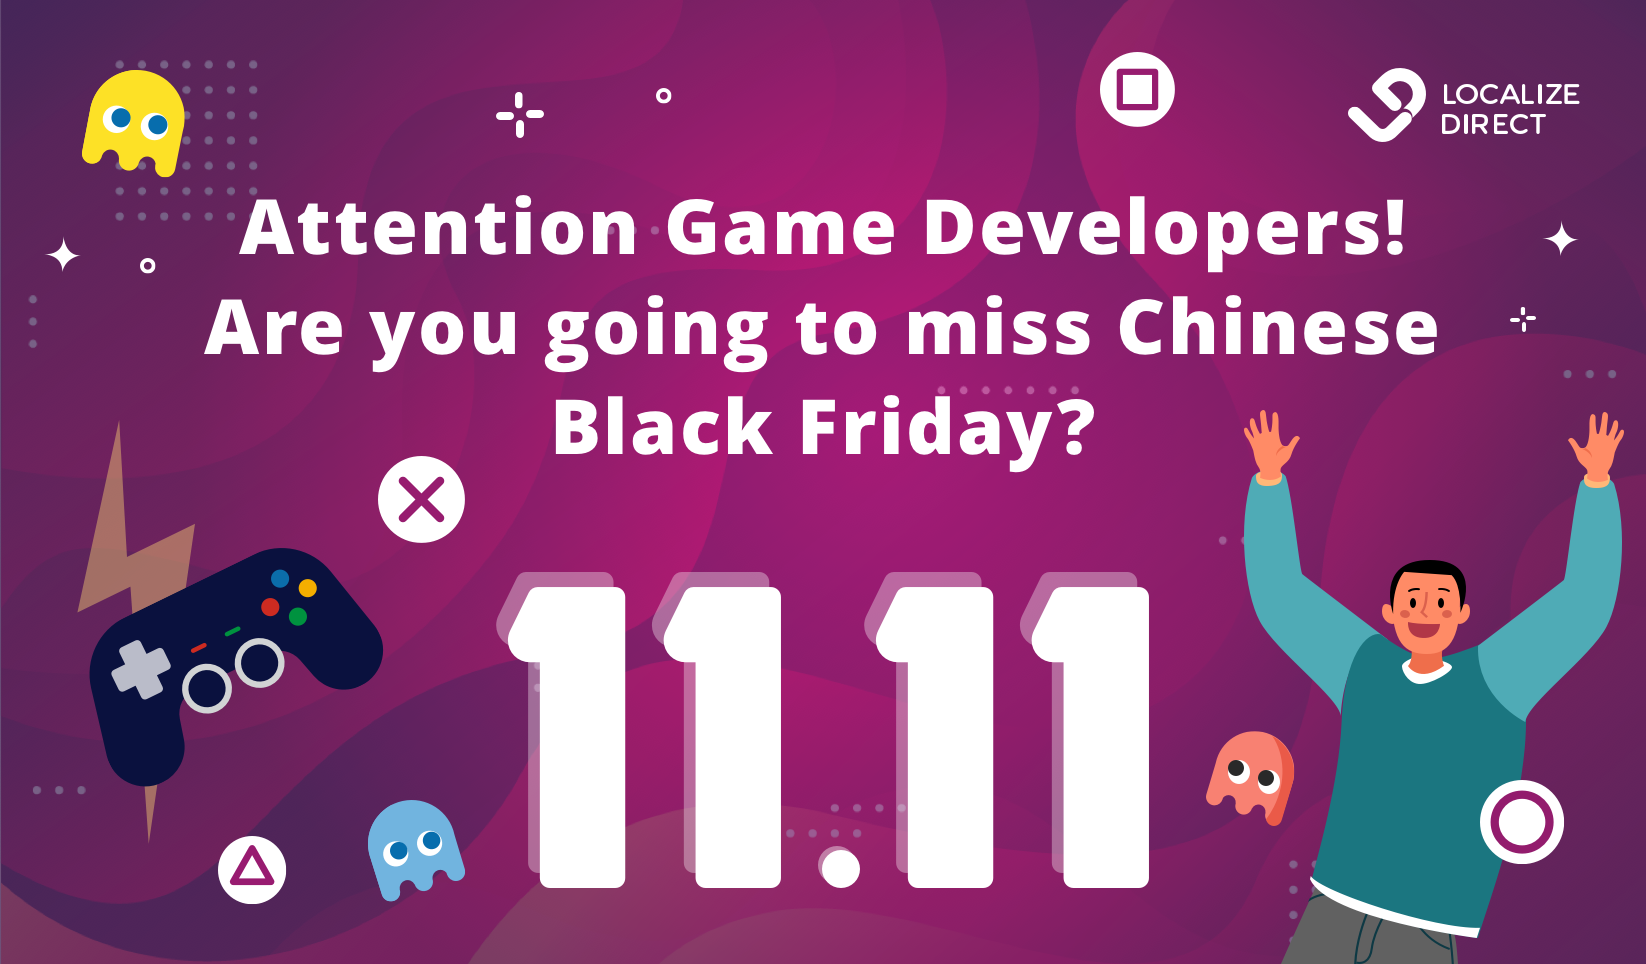 10 Actionable Tips For Your Chinese Video Game During Singles' Day